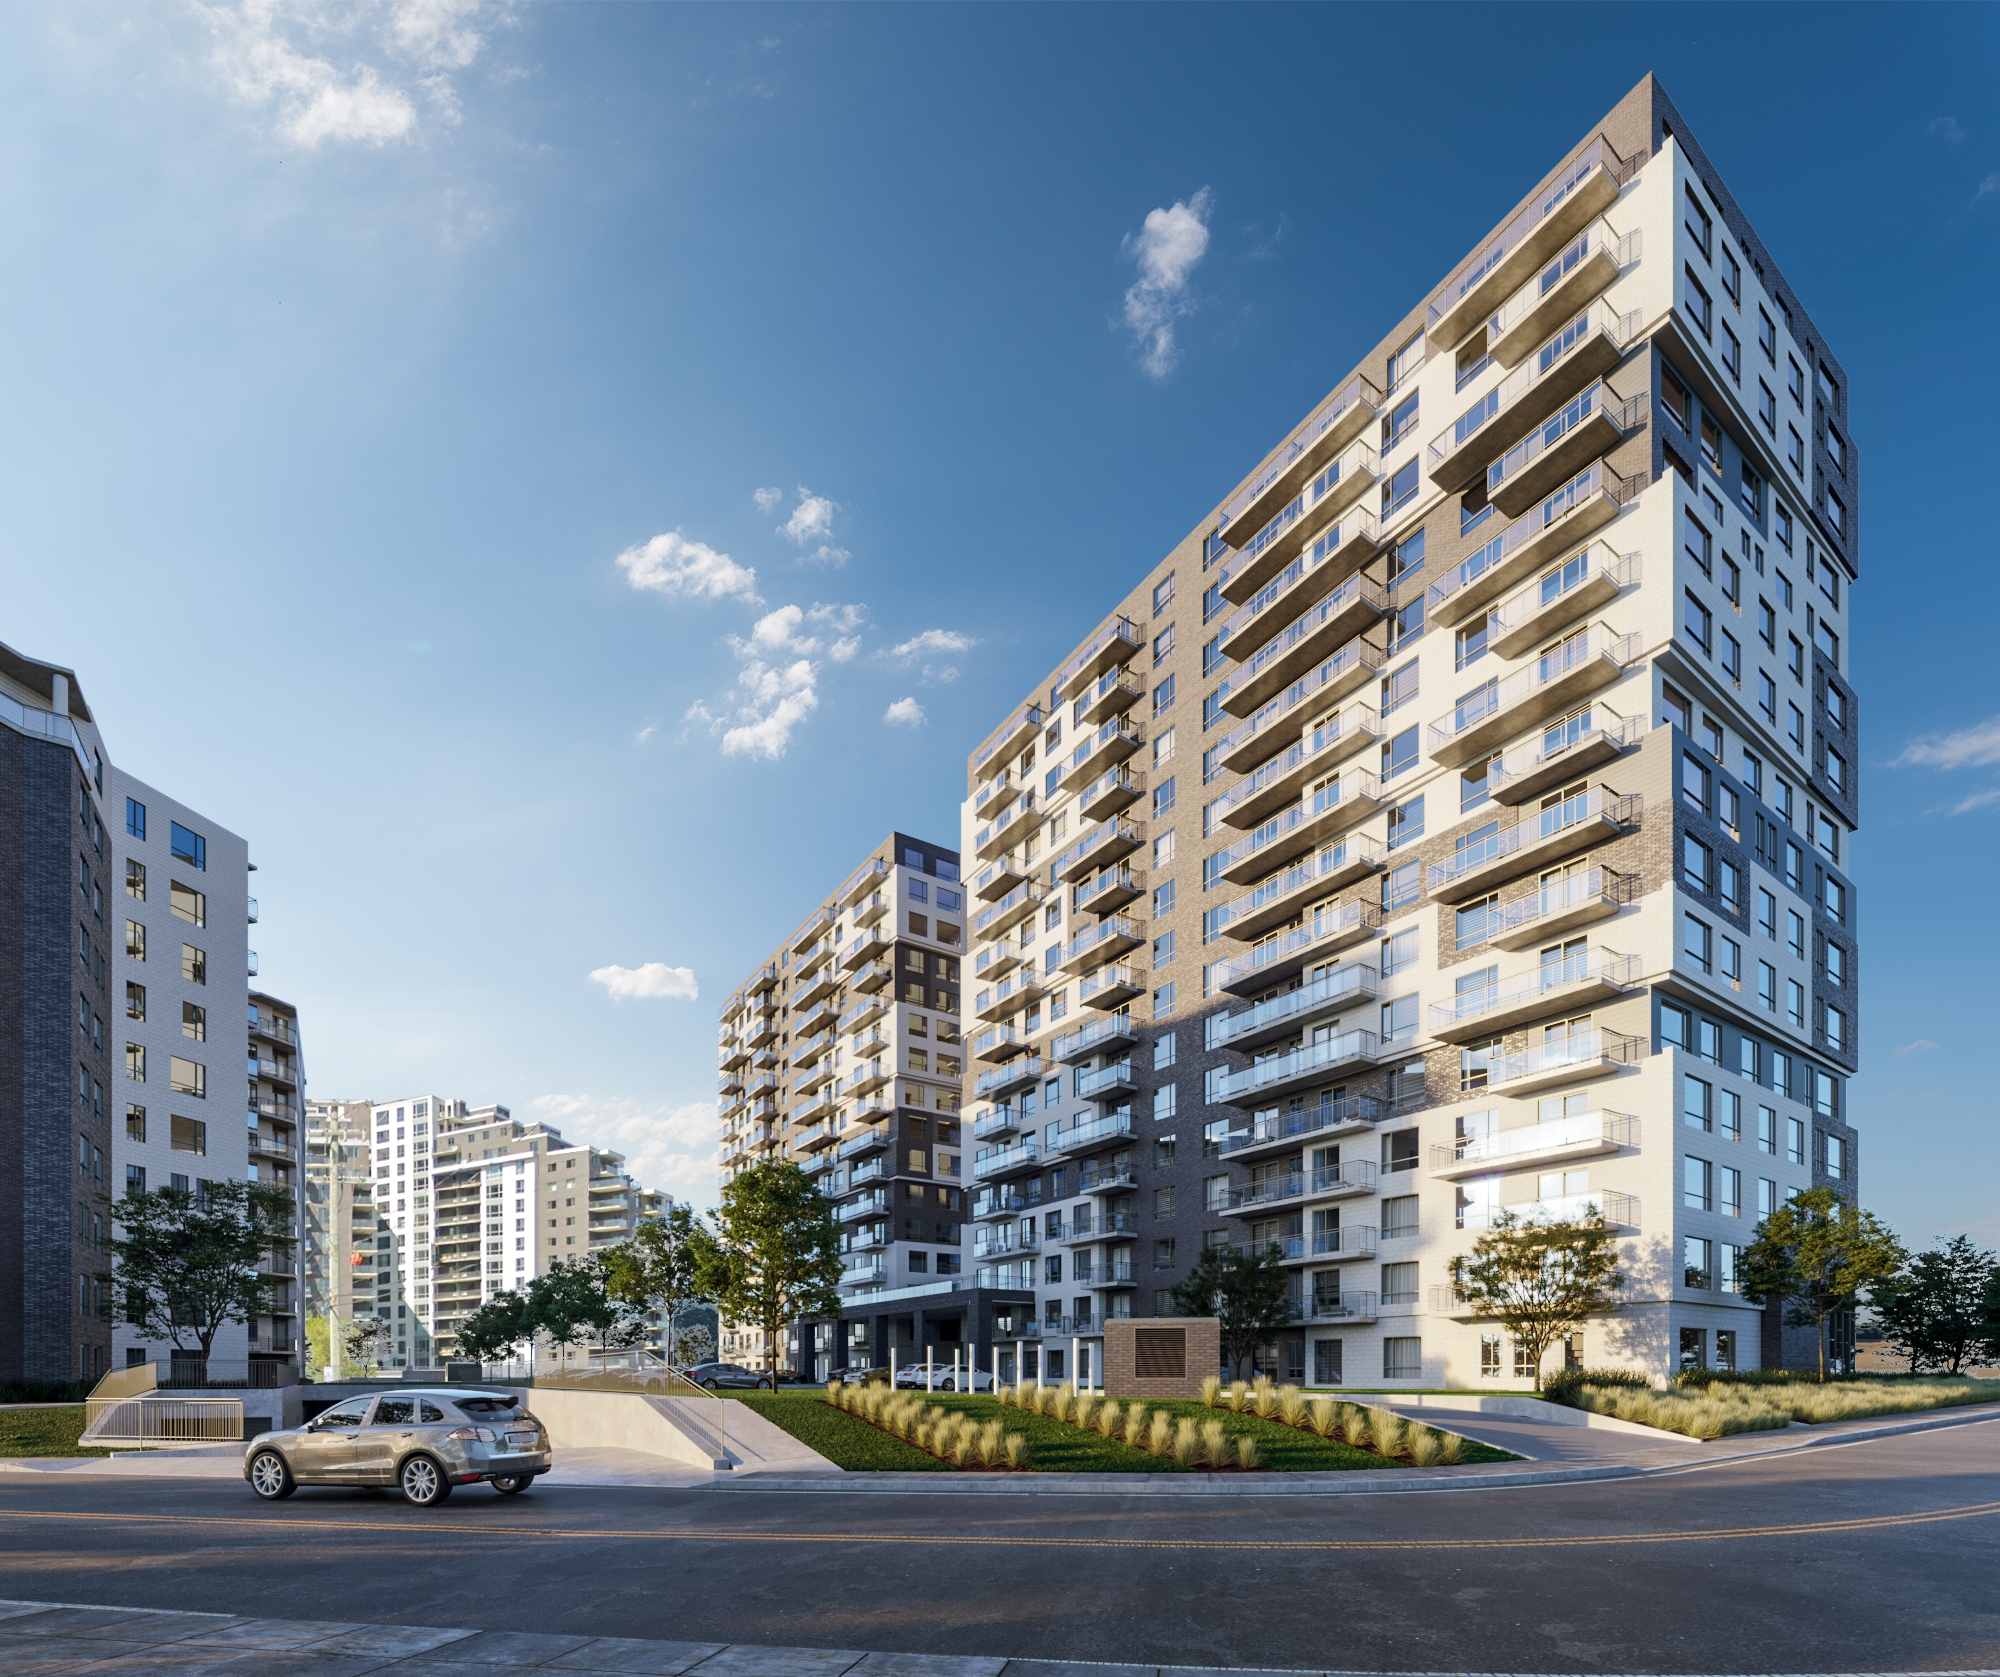 Kingswood Apartments: CITE URBAINE LASALLE